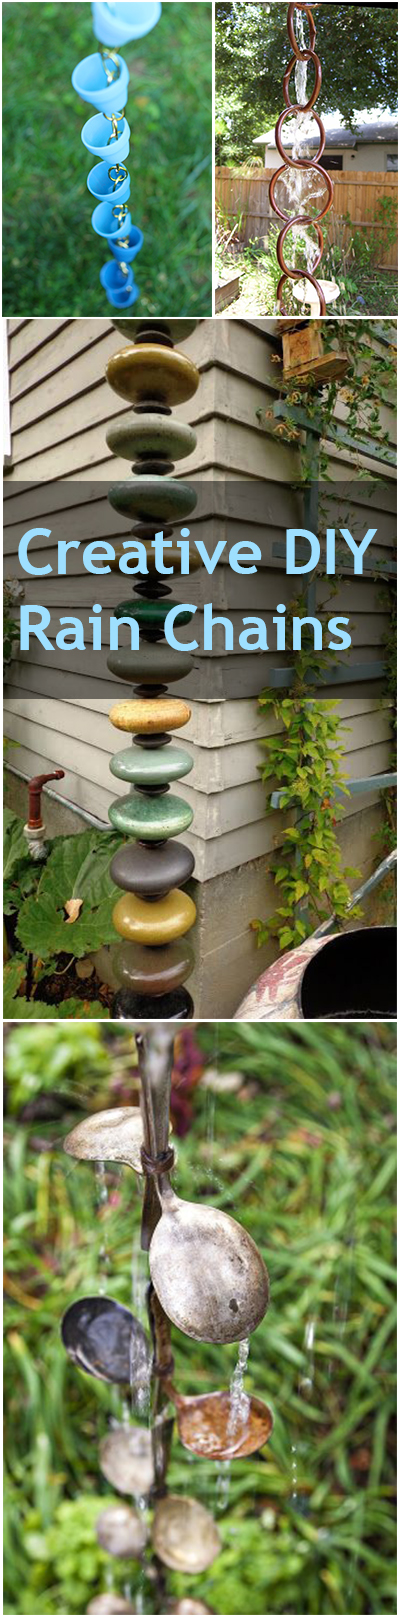 10 creative diy rain chain ideas bless my weeds for Homemade garden decor crafts